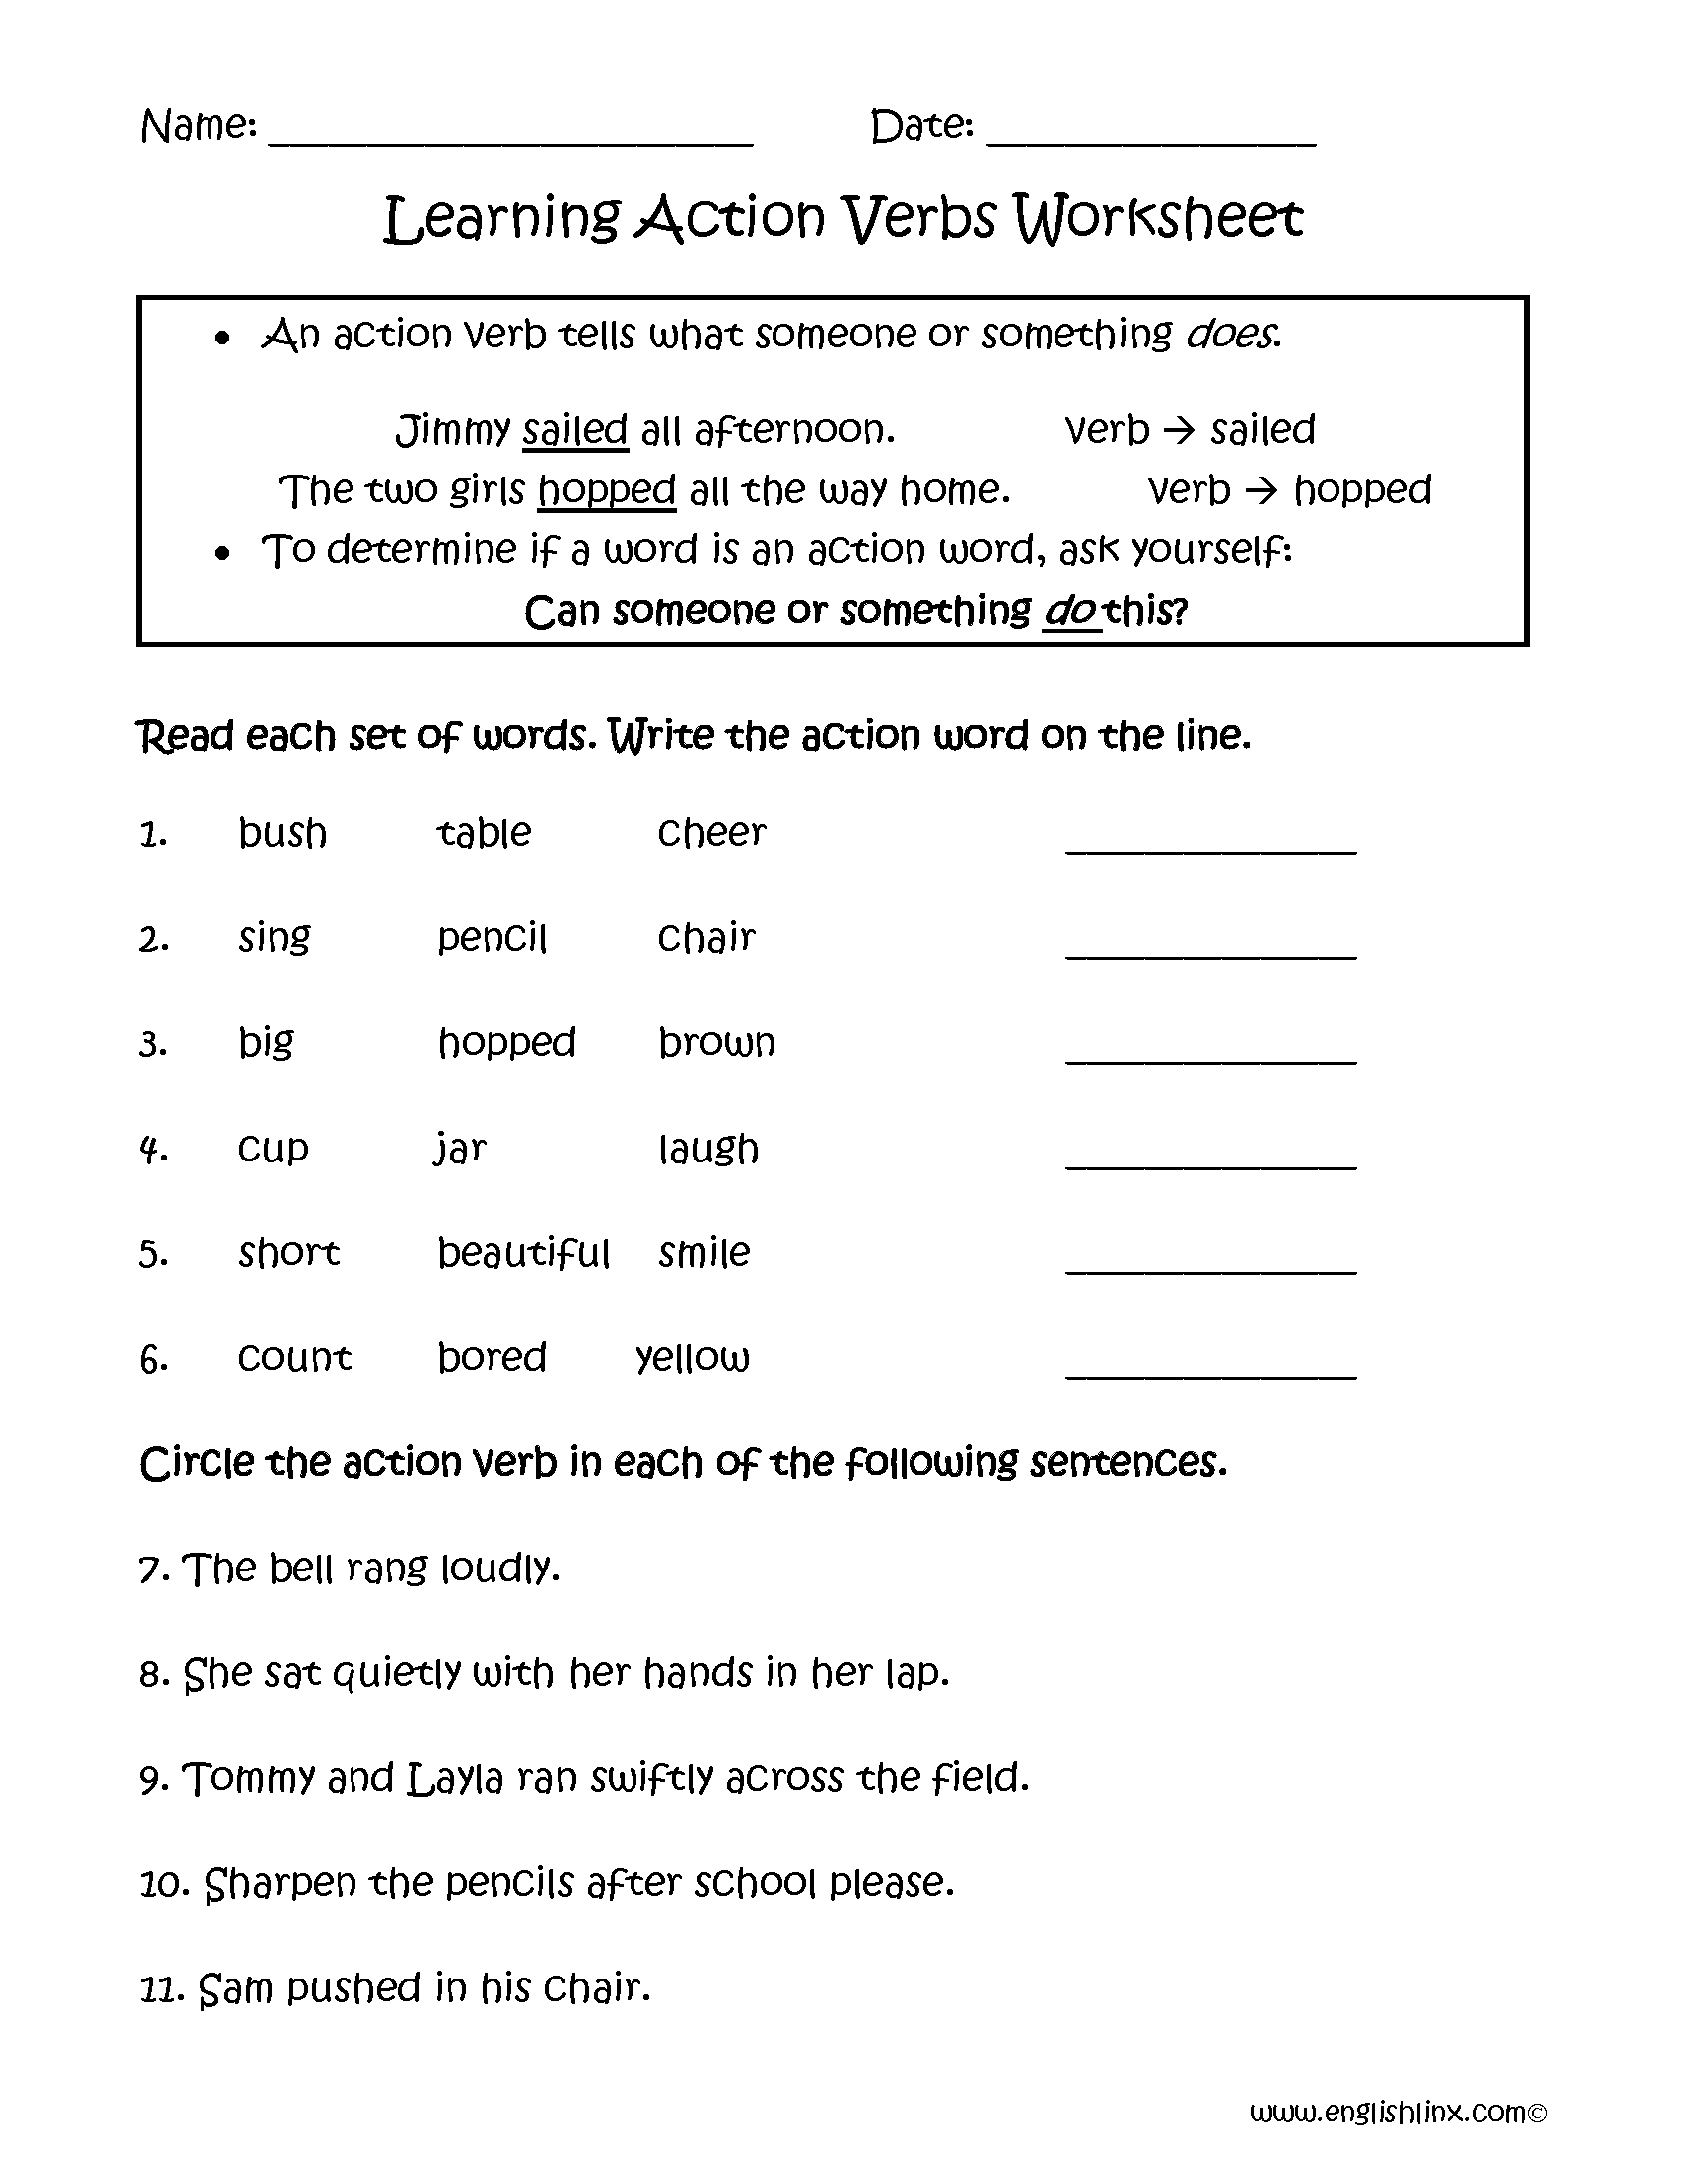 Action Verb Worksheets Middle School